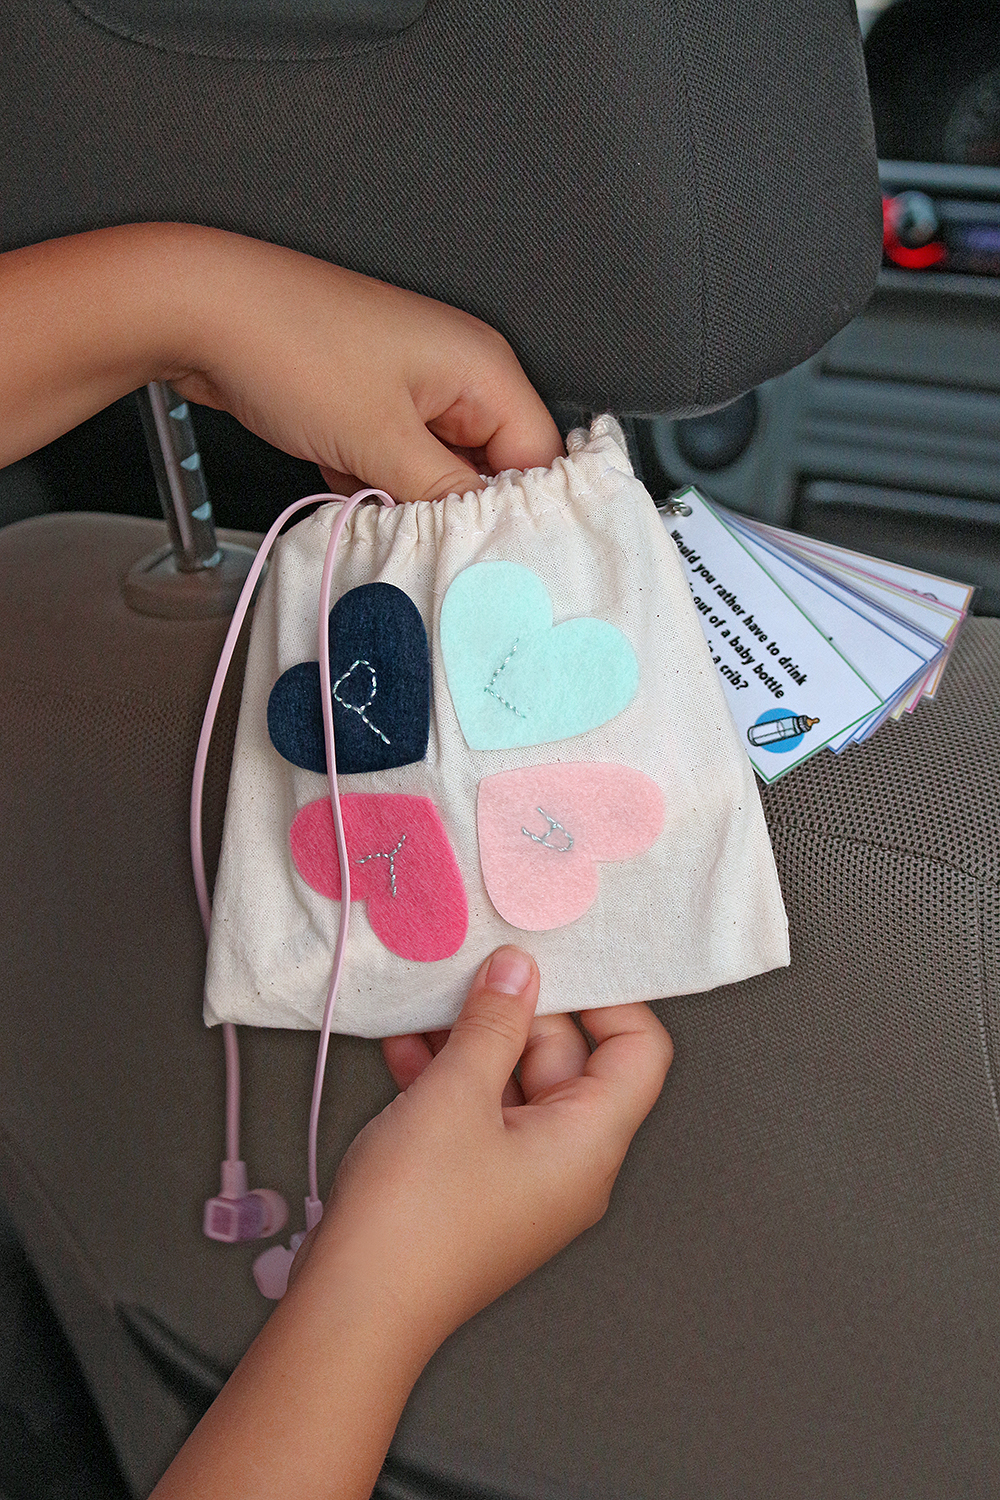 Travel Activity Bag with the Stitch Happy by Chantalle McDaniels for We R Memory Keepers